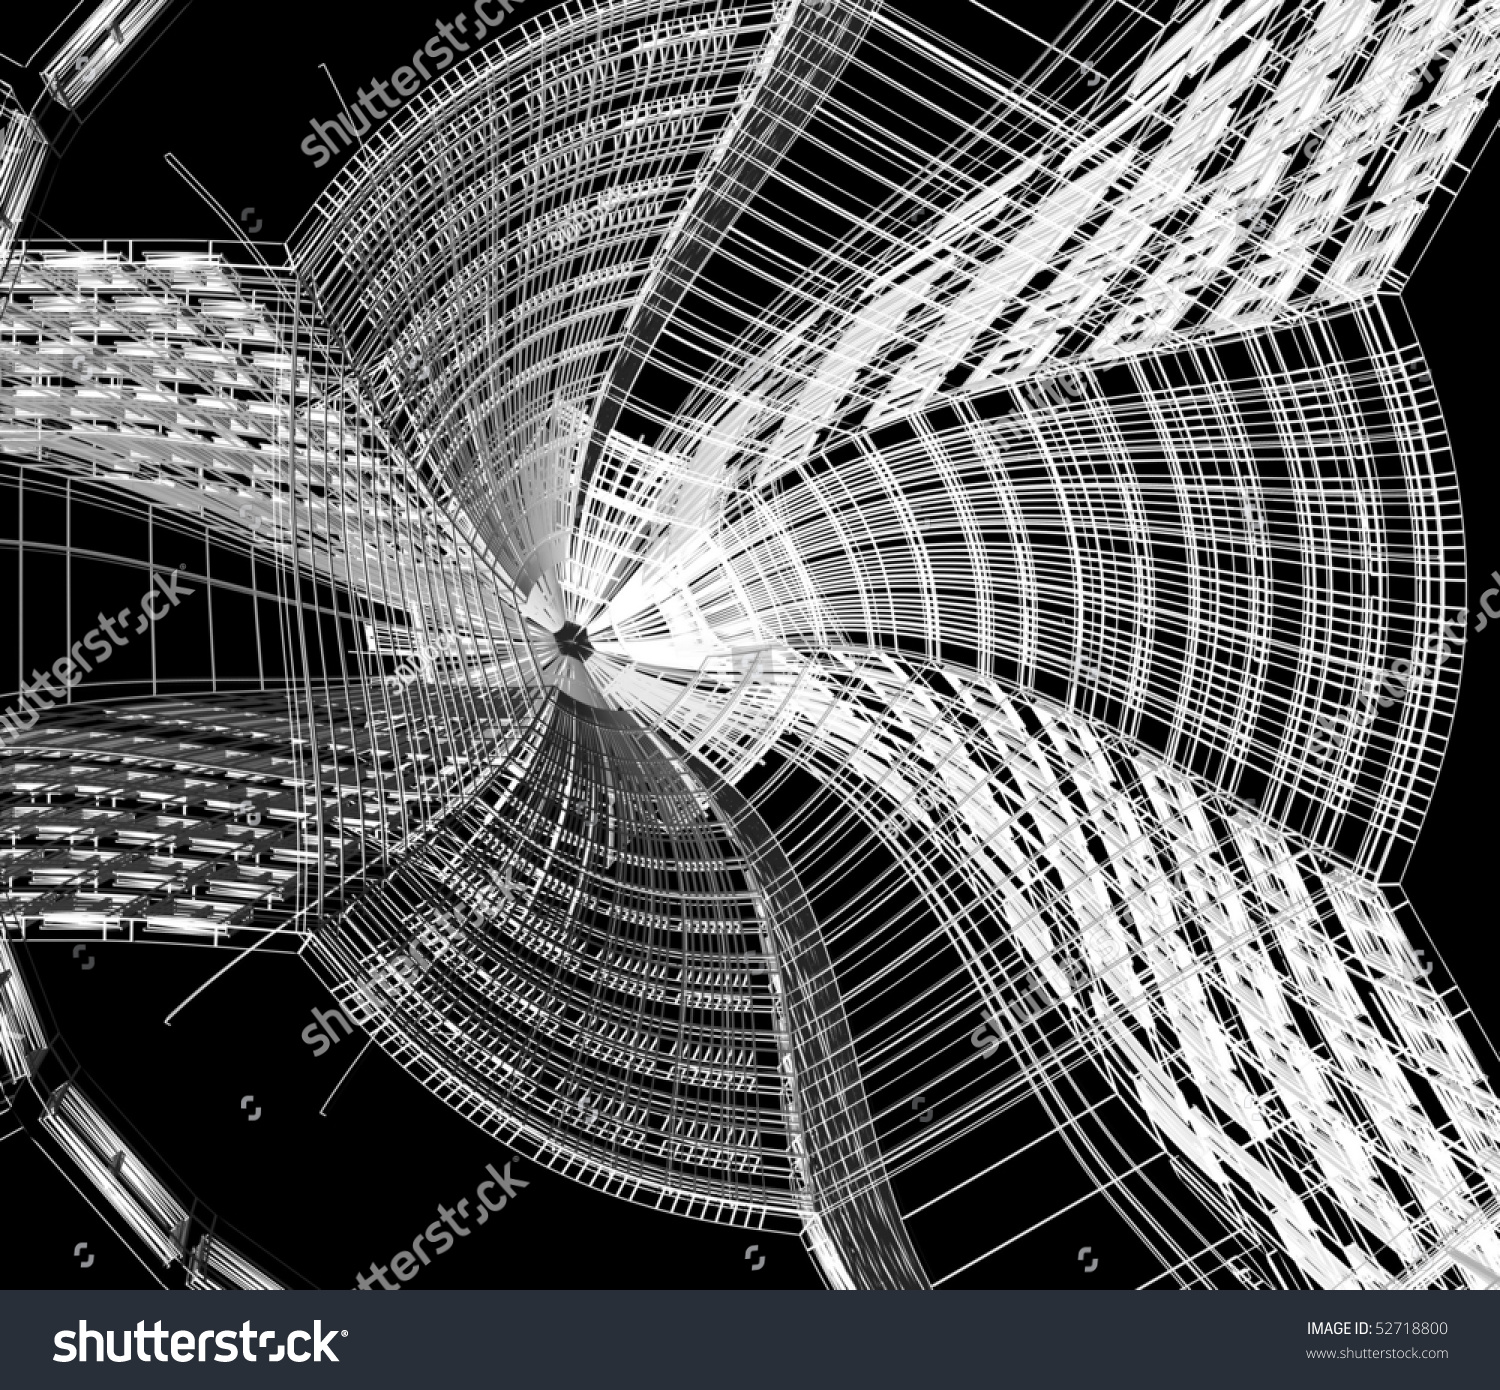 3d abstract architectural design - photo #24